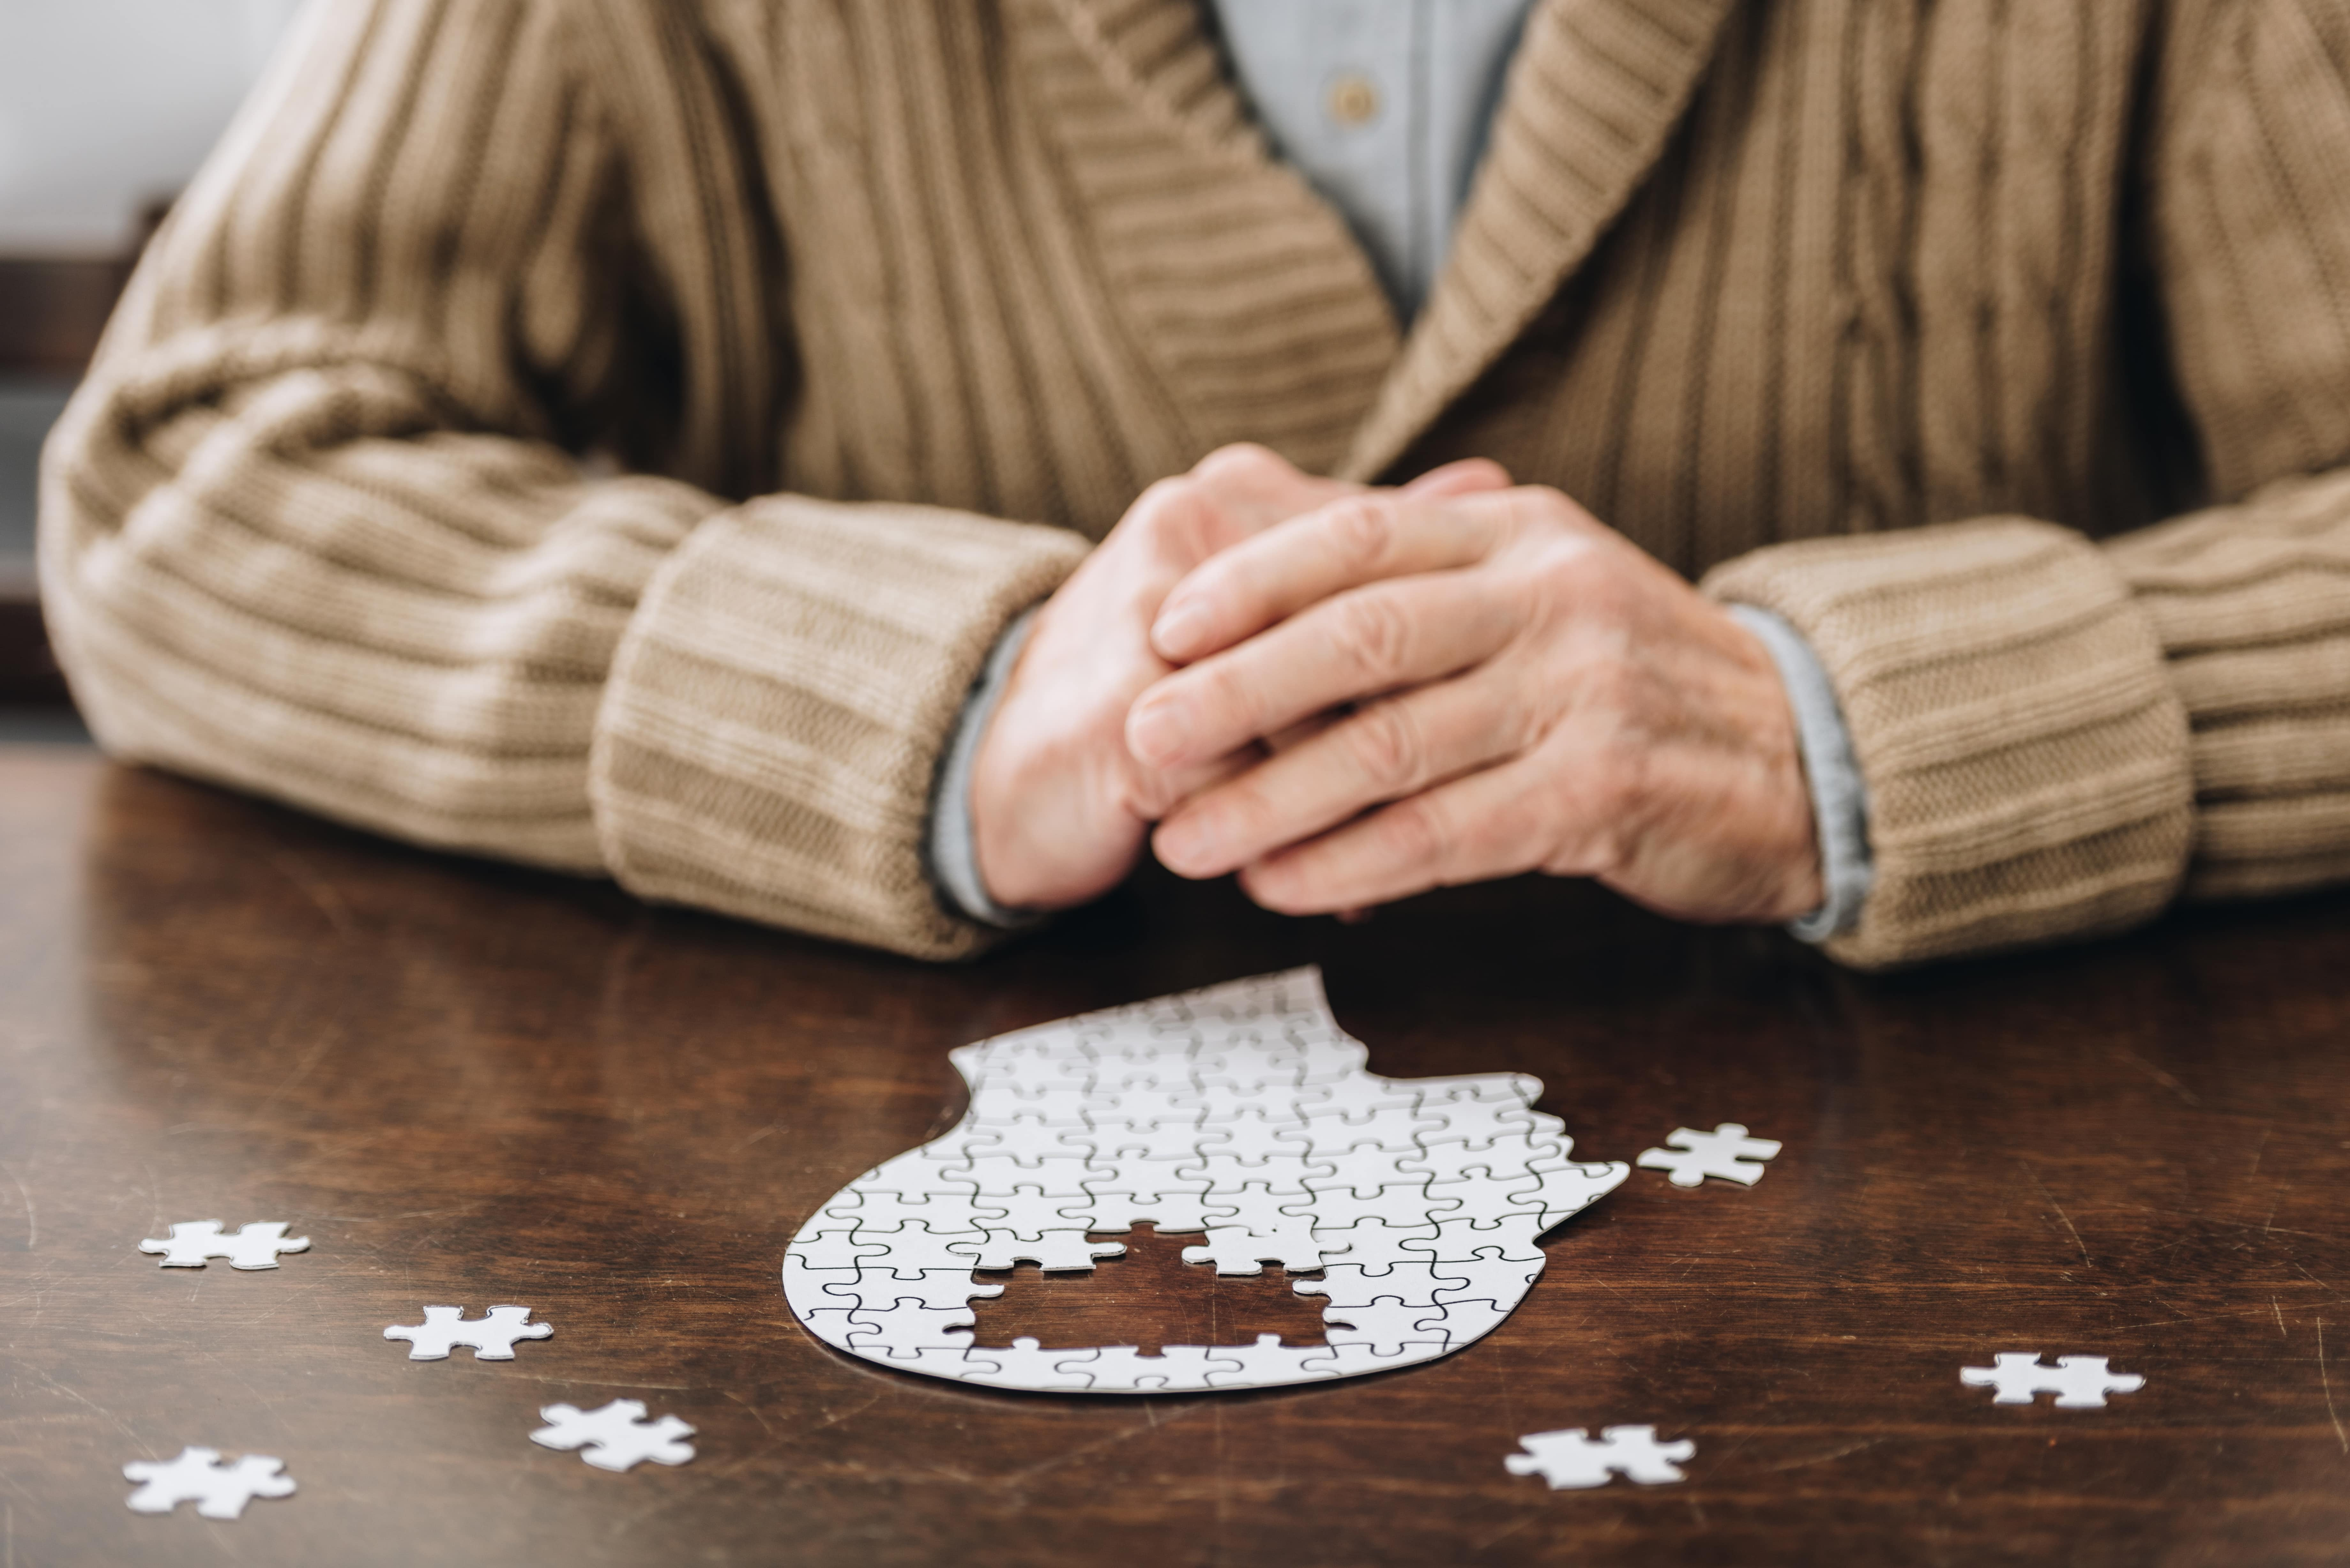 Normal Aging Versus Dementia: How to Tell the Difference